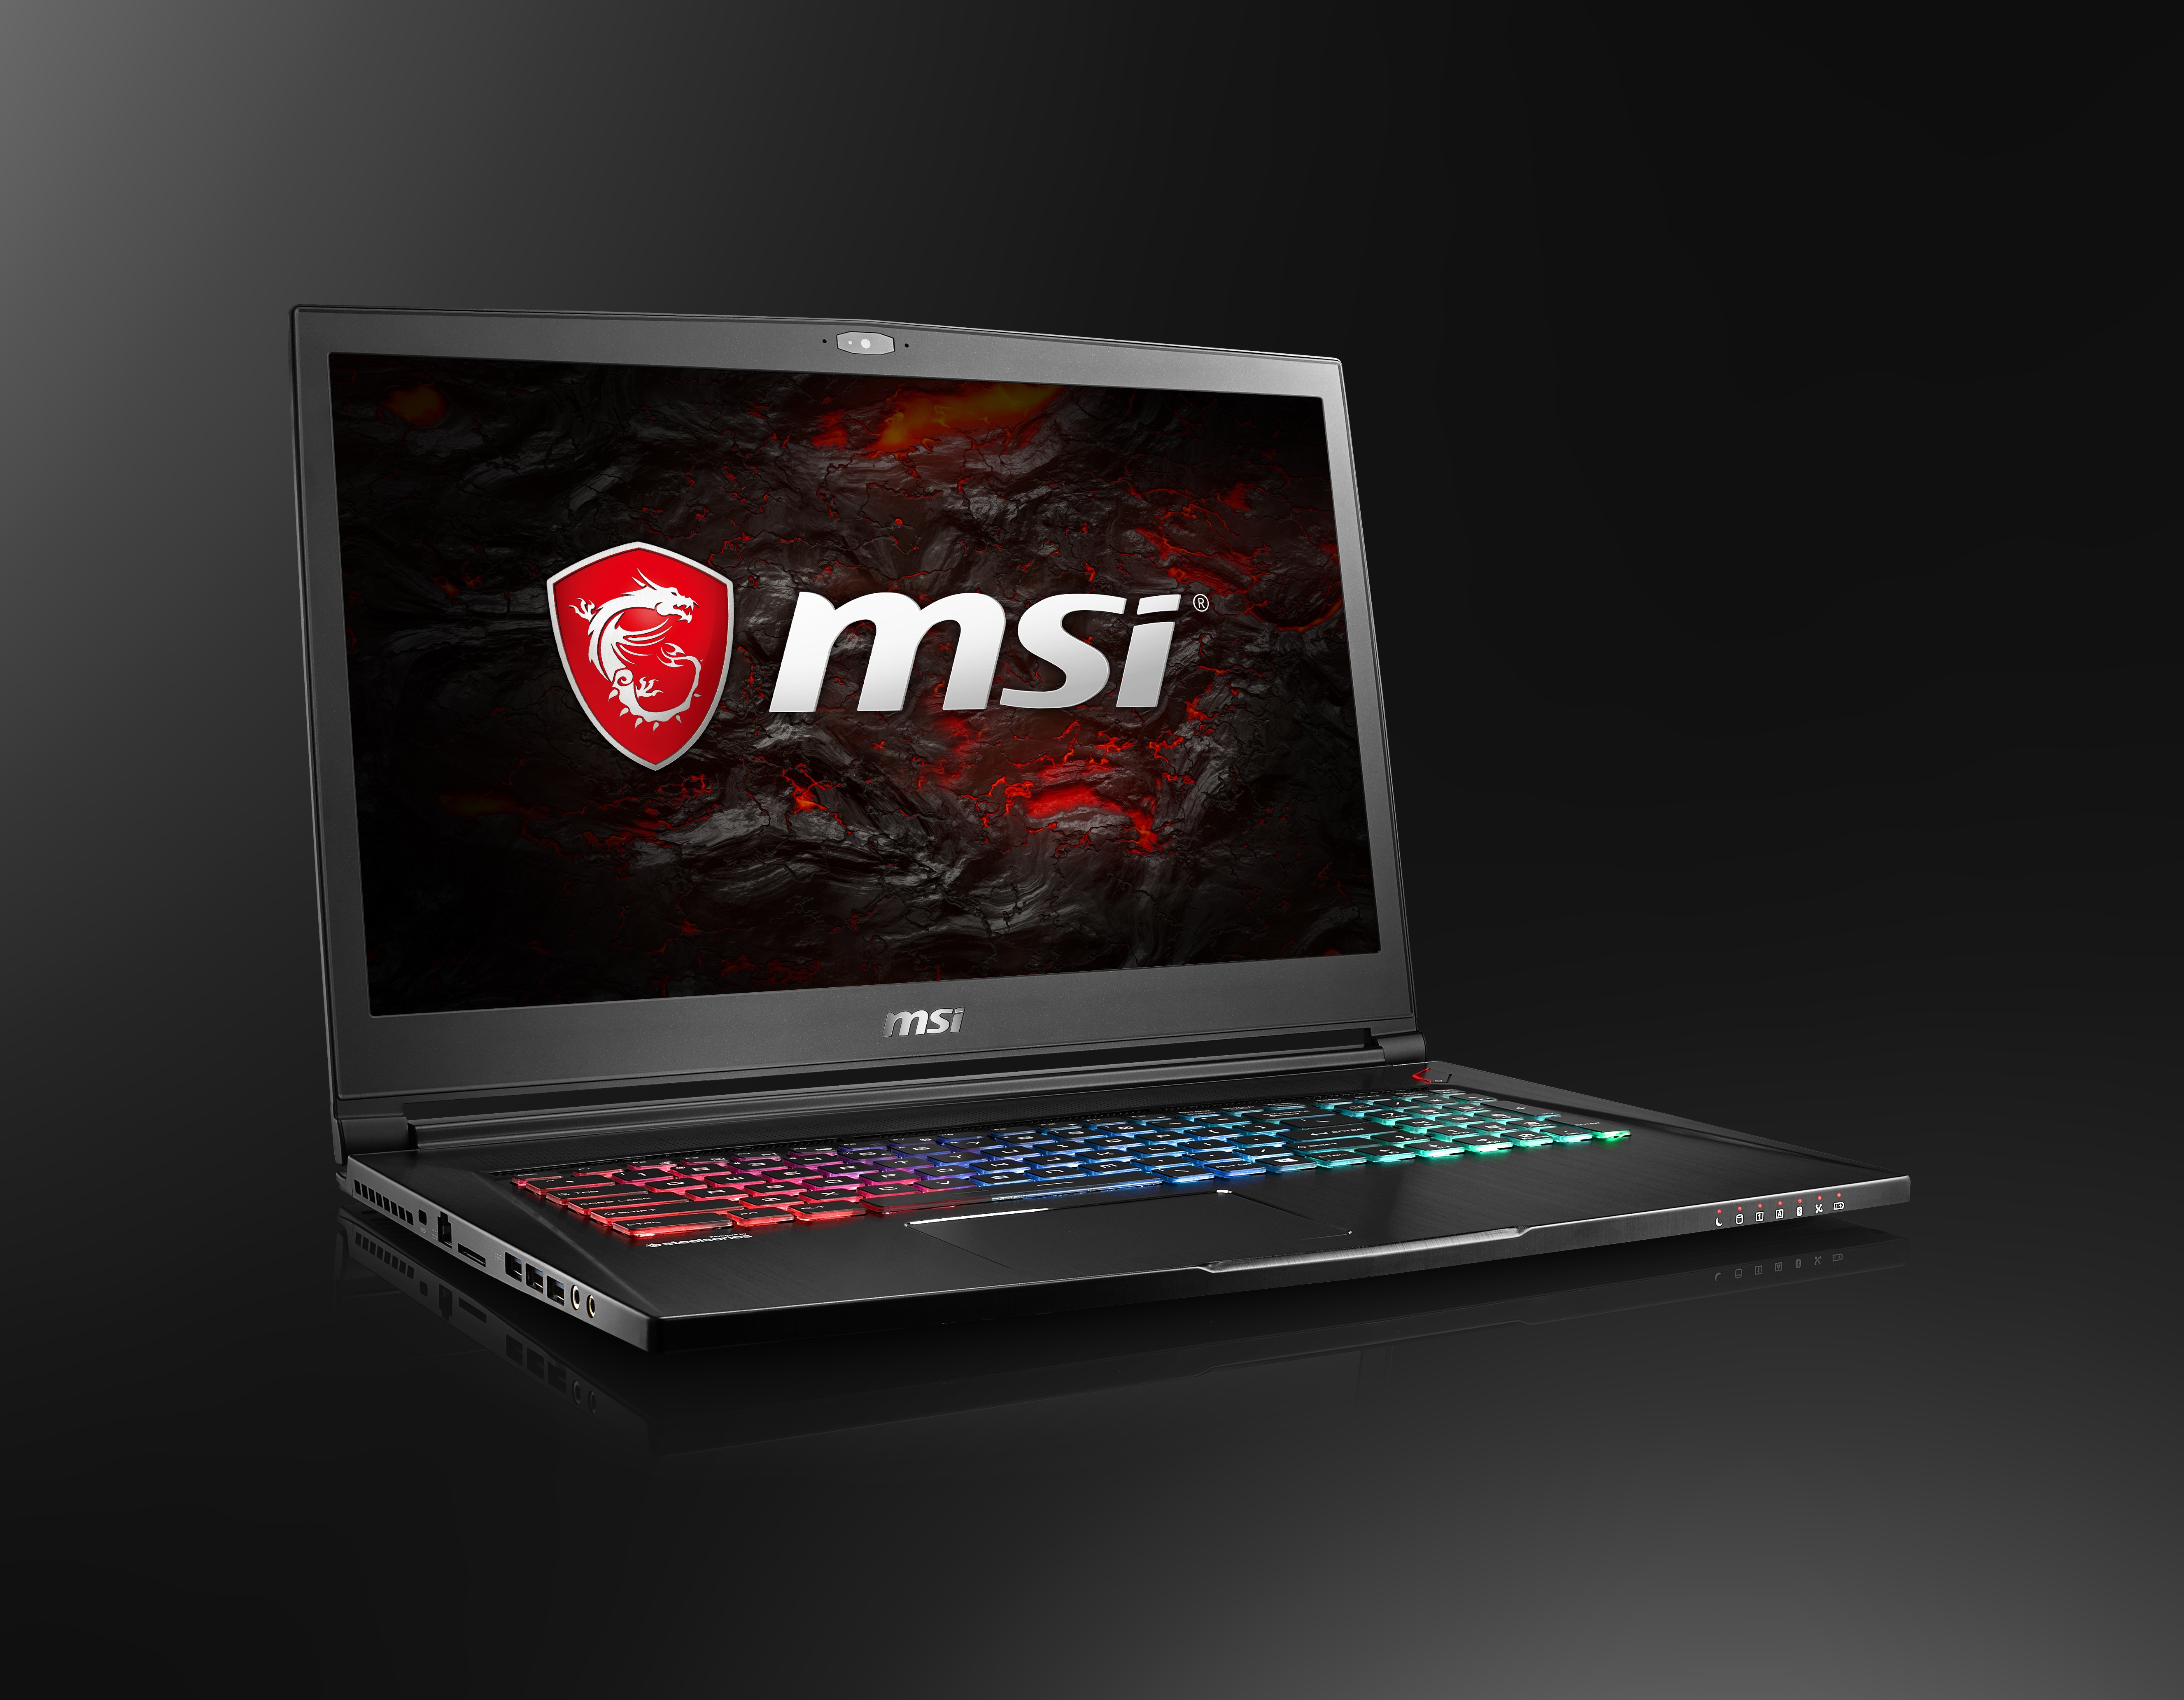 [CES 2017] Nuovi Notebook Kaby Lake da MSI